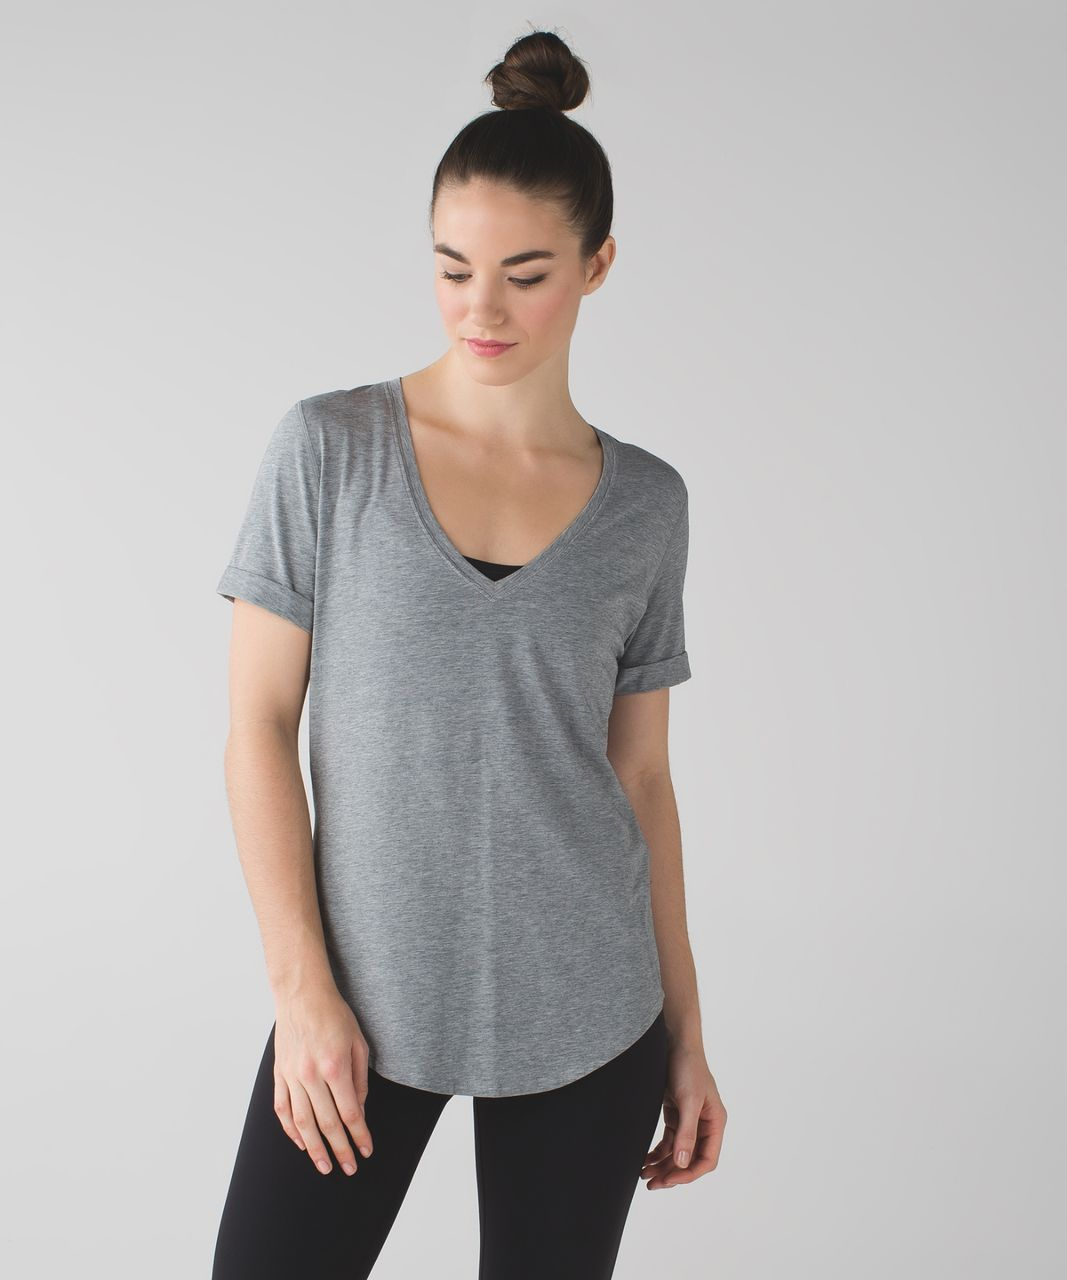 Lululemon Love Tee II - Heathered Medium Grey